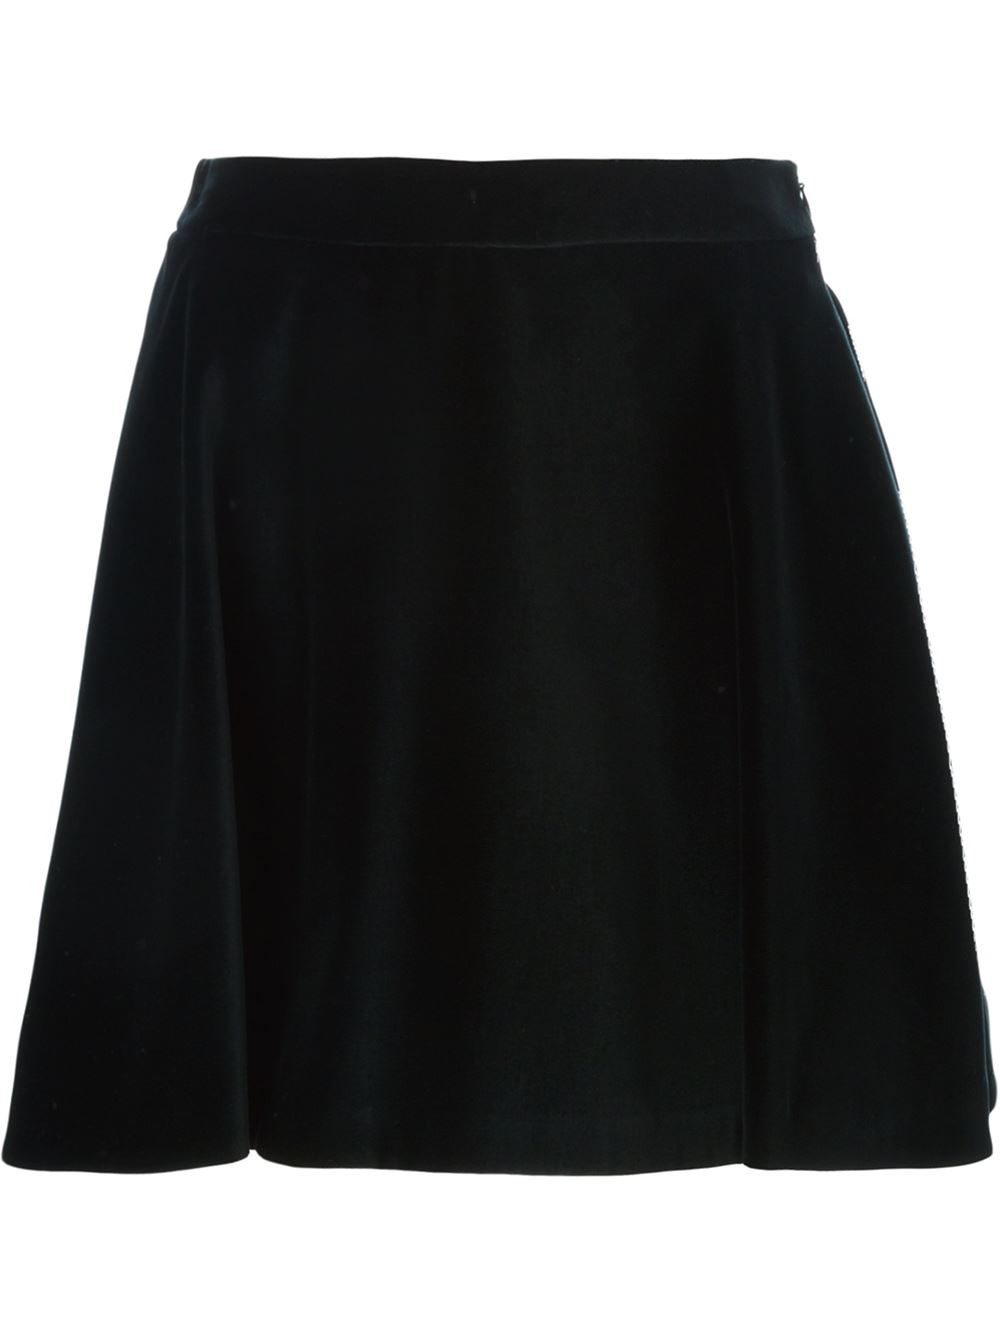 Love moschino A-line Velvet Skirt in Black | Lyst